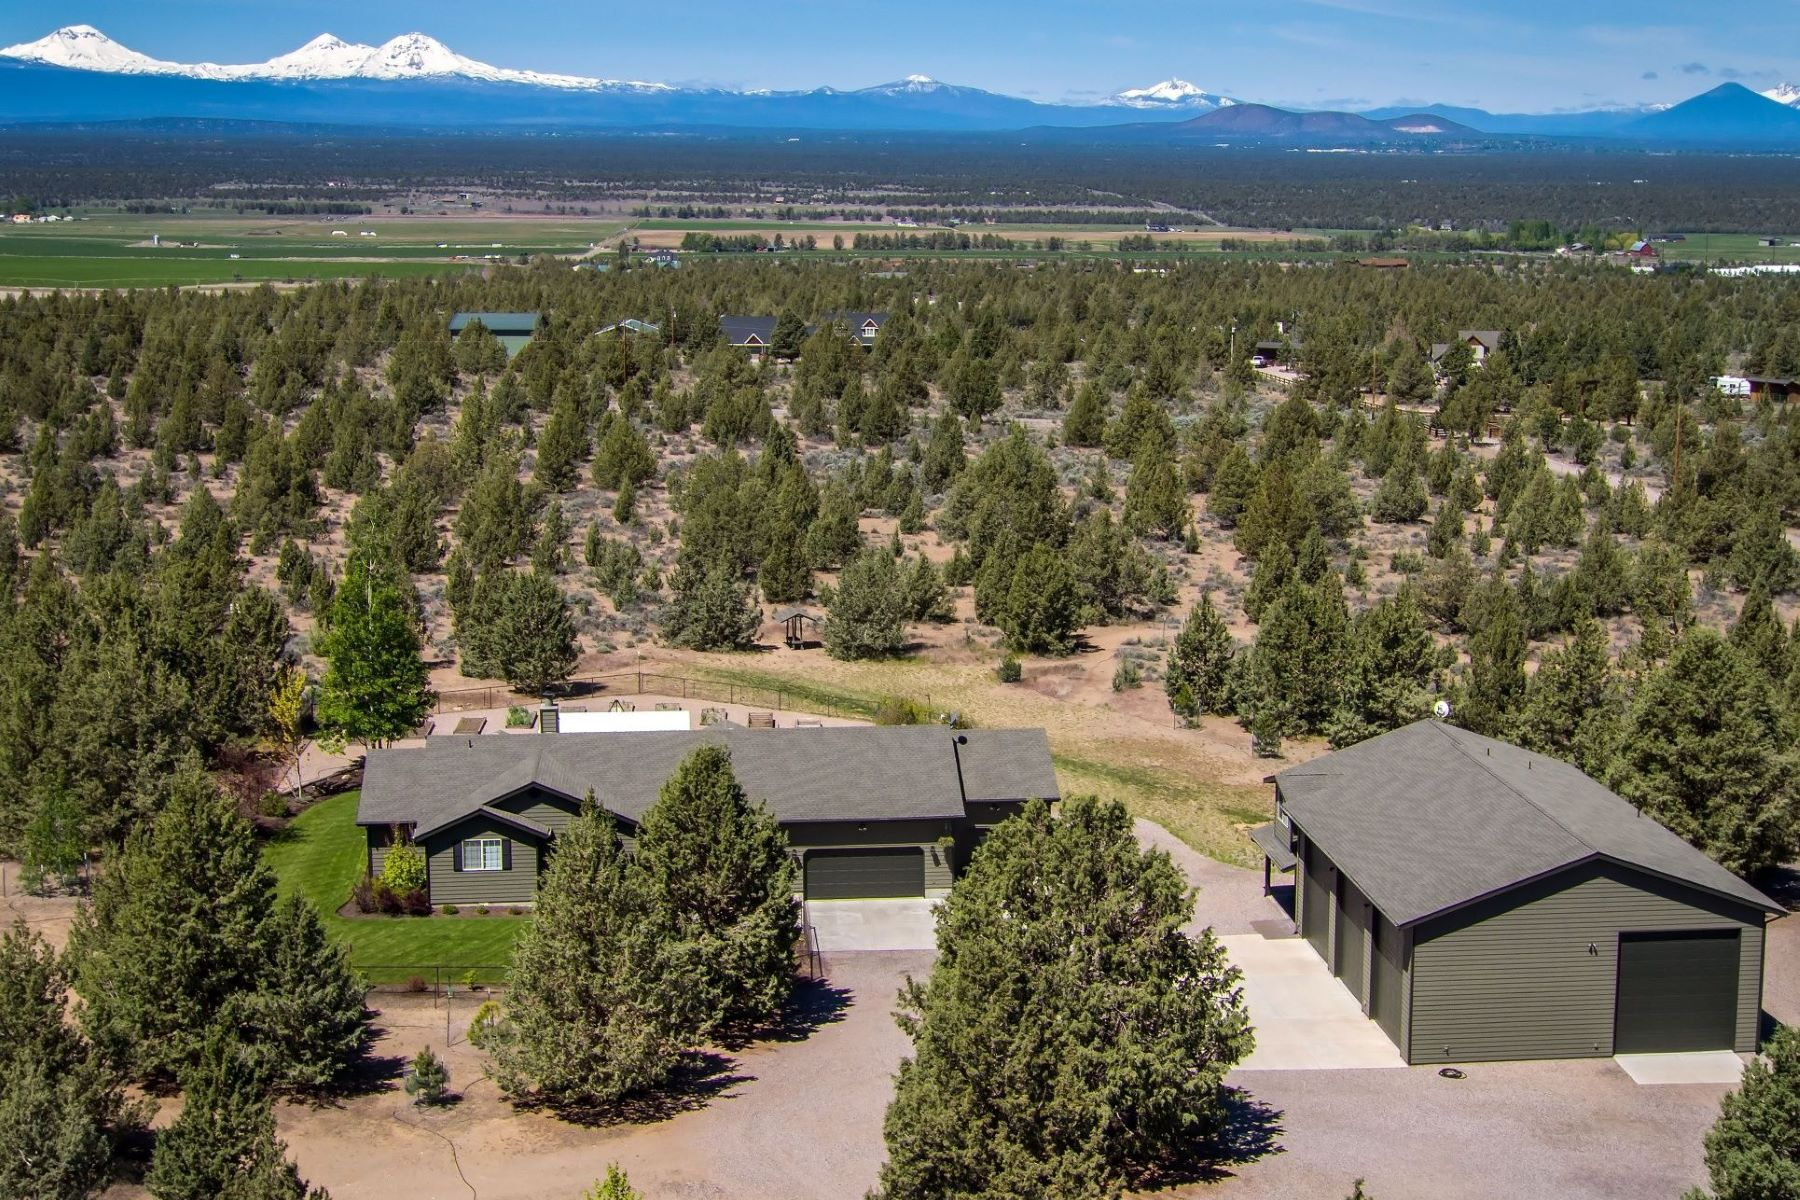 Other Residential Homes for Active at 11600 SW Reif Road Powell Butte, OR 97753 11600 SW Reif Road Powell Butte, Oregon 97753 United States